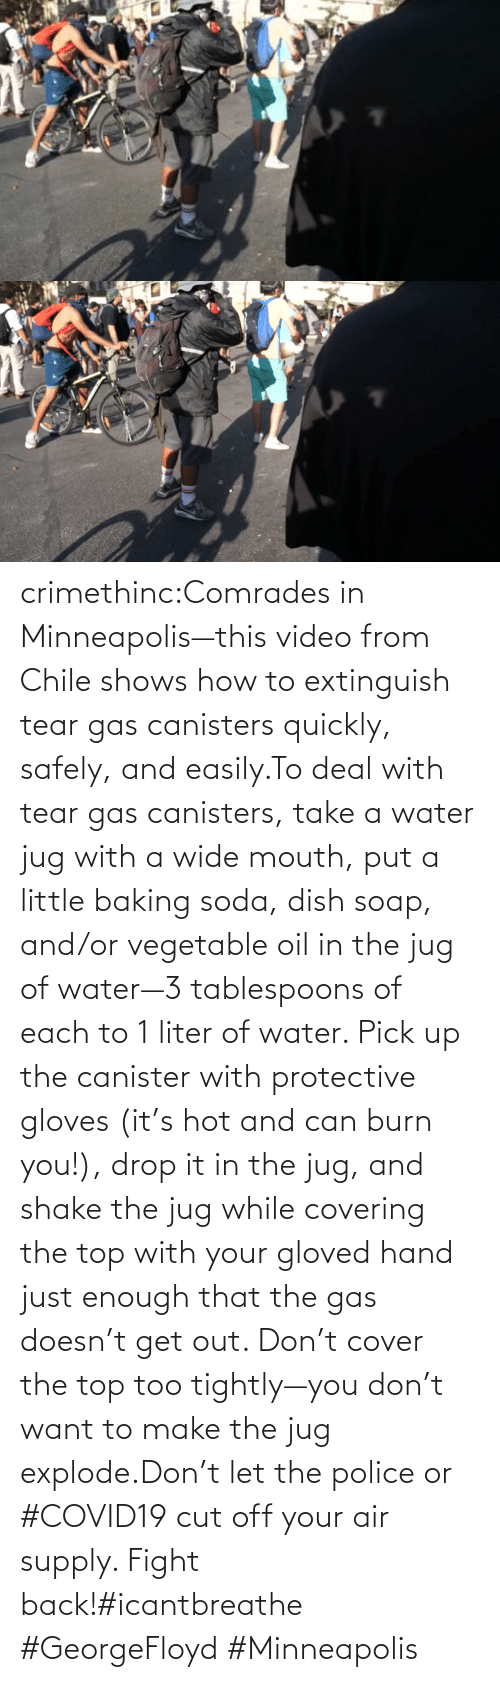 soap: crimethinc:Comrades in Minneapolis—this video from Chile shows how to extinguish tear gas canisters quickly, safely, and easily.To deal with tear gas canisters, take a water jug with a wide mouth, put a little baking soda, dish soap, and/or vegetable oil in the jug of water—3 tablespoons of each to 1 liter of water. Pick up the canister with protective gloves (it's hot and can burn you!), drop it in the jug, and shake the jug while covering the top with your gloved hand just enough that the gas doesn't get out. Don't cover the top too tightly—you don't want to make the jug explode.Don't let the police or #COVID19 cut off your air supply. Fight back!#icantbreathe #GeorgeFloyd #Minneapolis